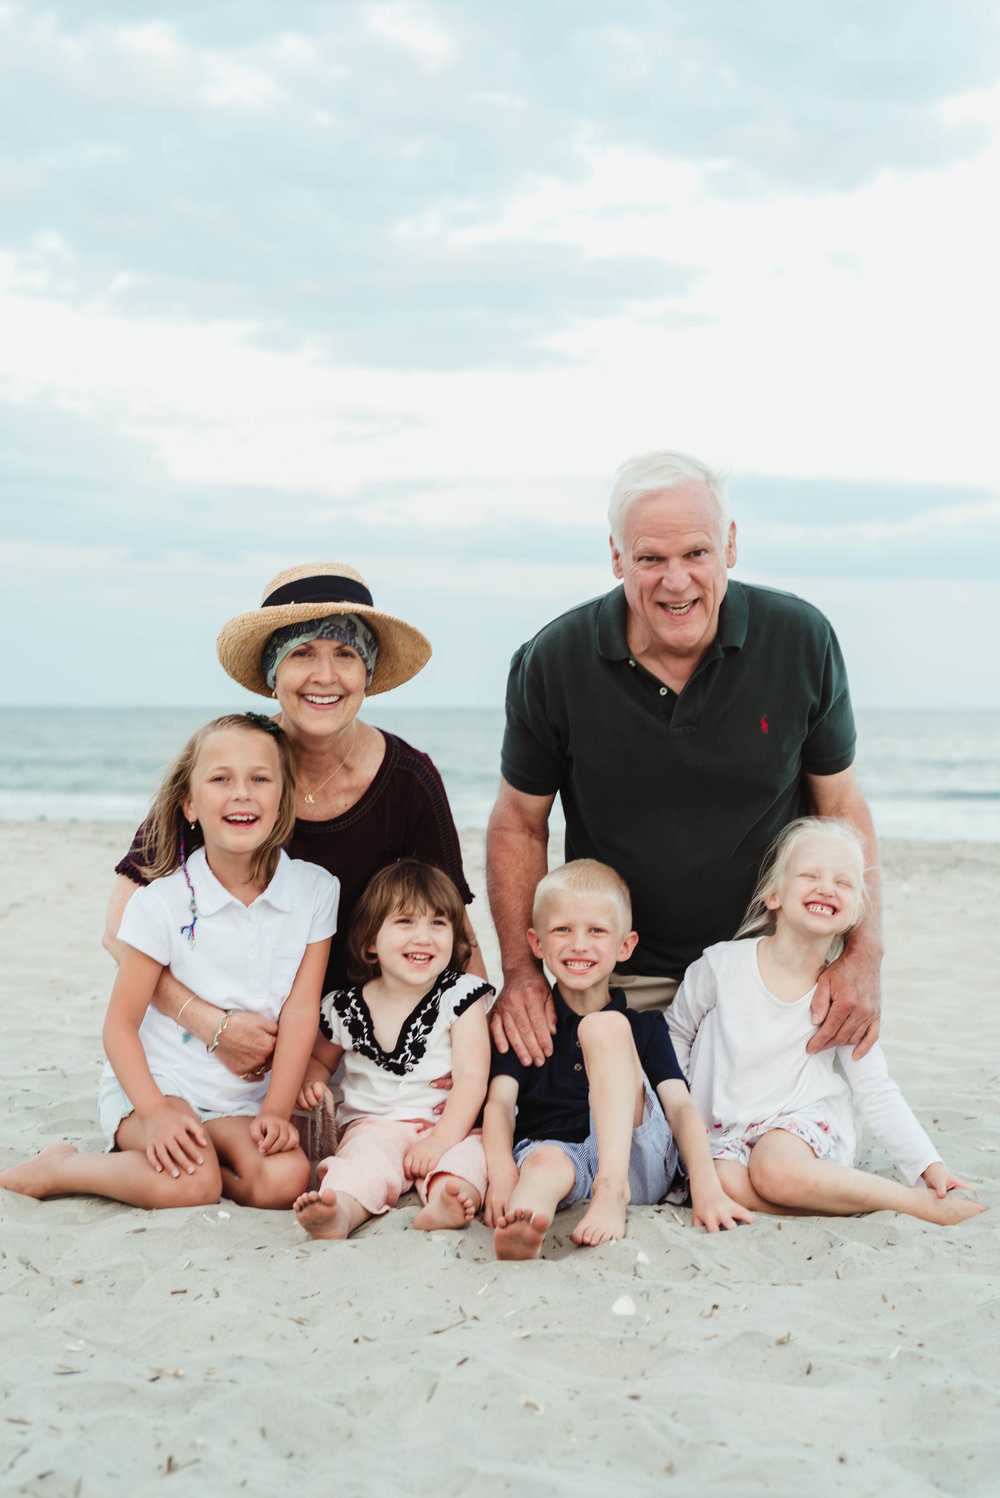 Magdalena Studios - Beach Family Photographer in Ocean City New Jersey NJ45.jpg